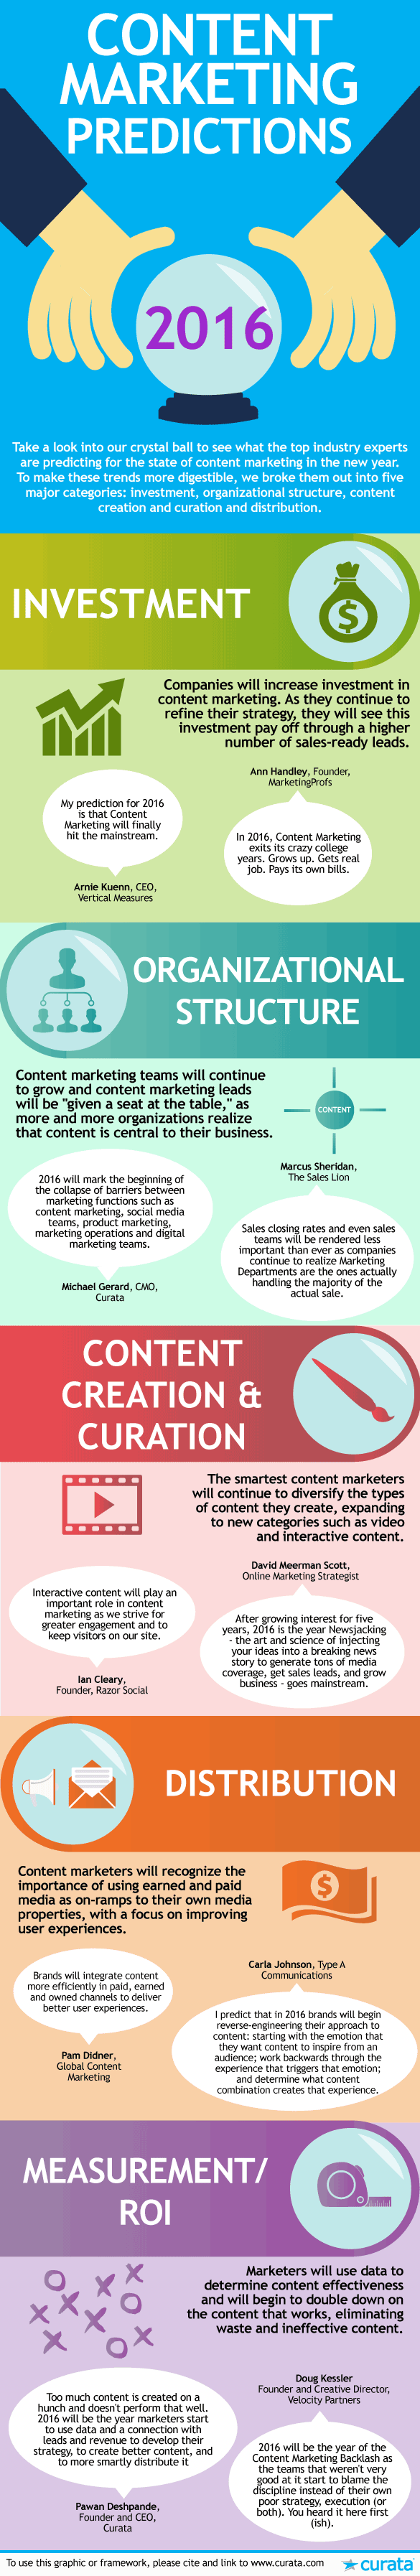 content-marketing-predictions-2016